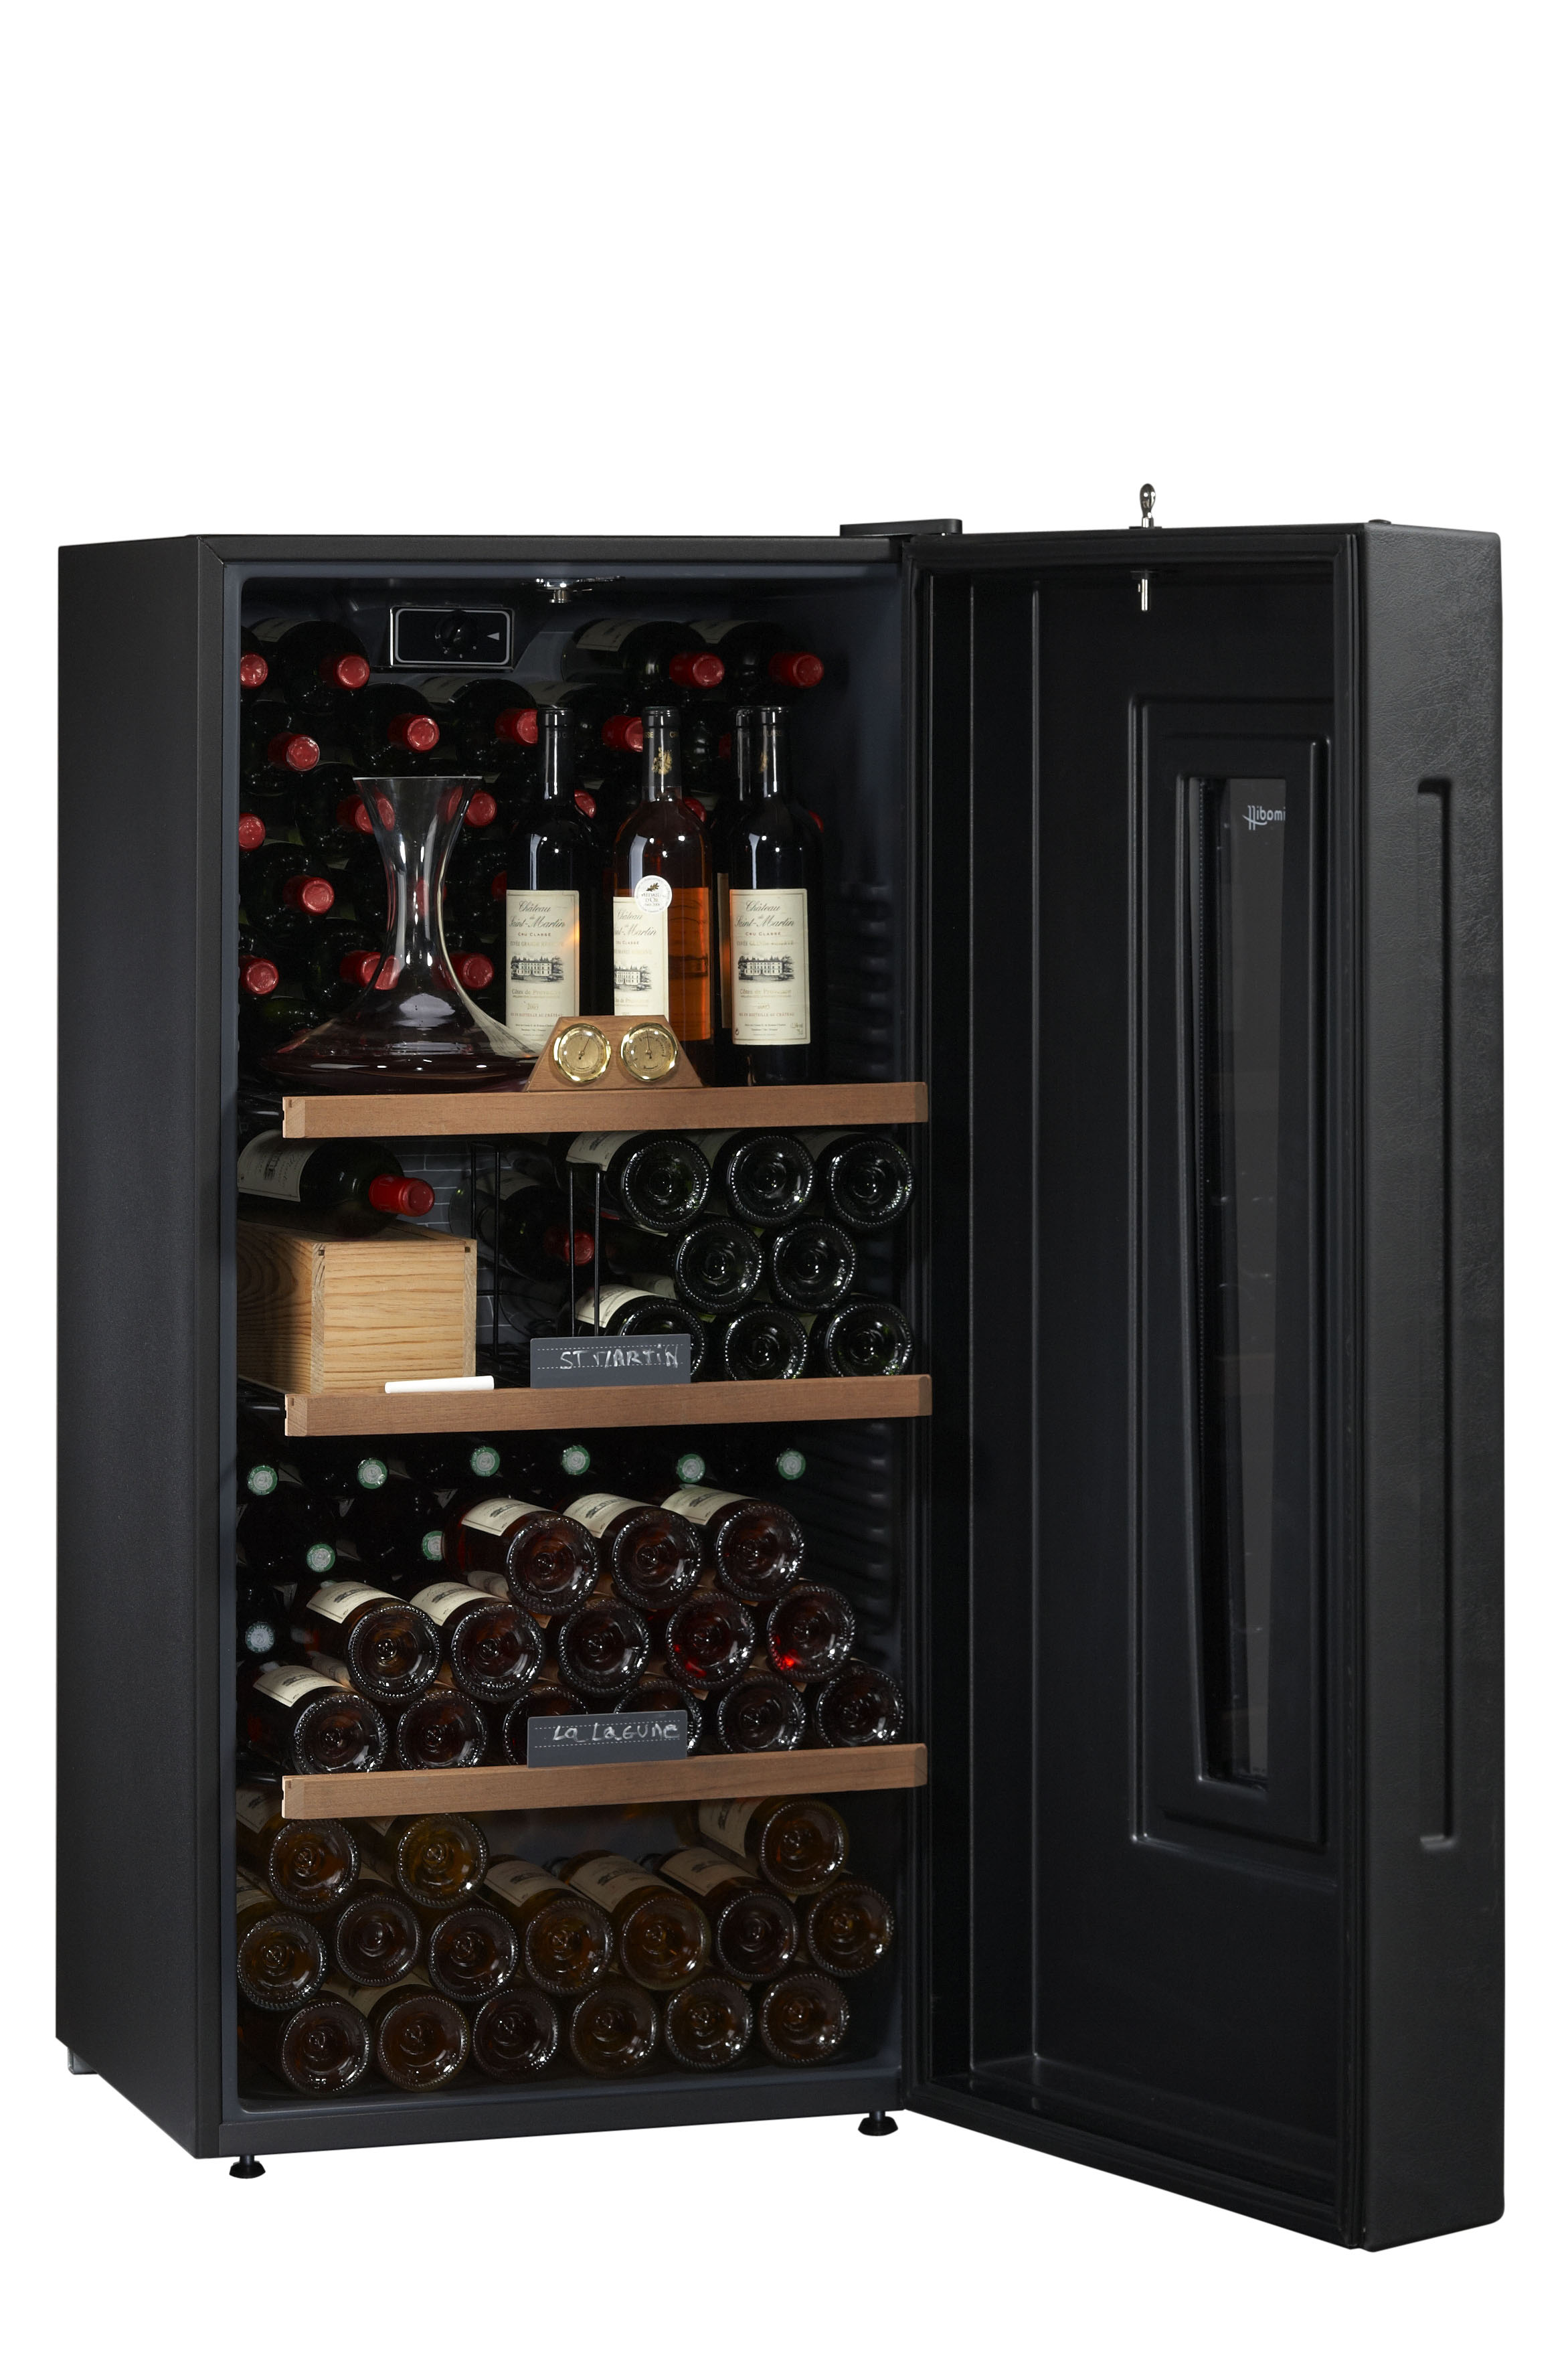 design furniture at cabineture cabinet stupendous cabinets co with full denver refrigerated size of photo wine costco coolerwine cooler image cool